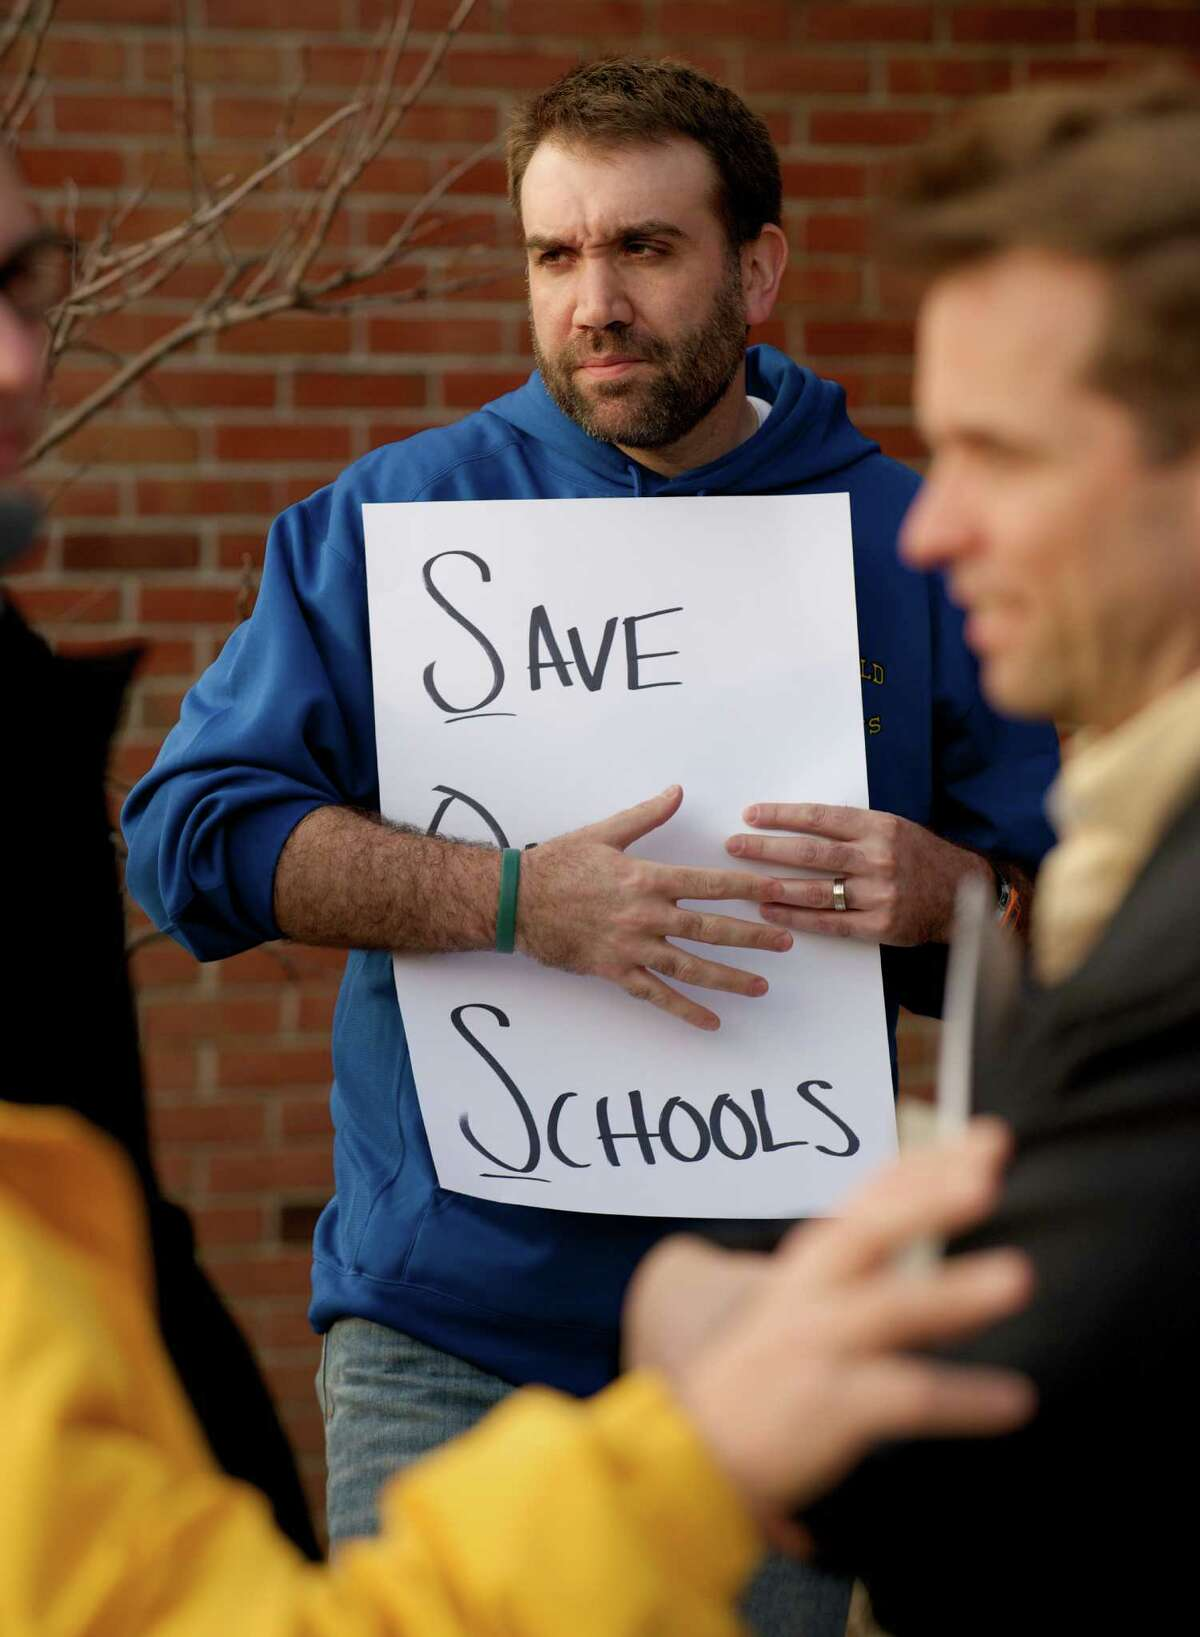 """Chris Buckley, 35, of Brookfield, holds a sign asking to """"Save Our Schools"""" during a parents and education staff rally to increase funding for the Brookfield, Conn school system, which was held before the Board of Finance public hearing, at Brookfield High School on Tuesday, April 8, 2014. Buckley has two children who will be students in the Brookfield School System."""